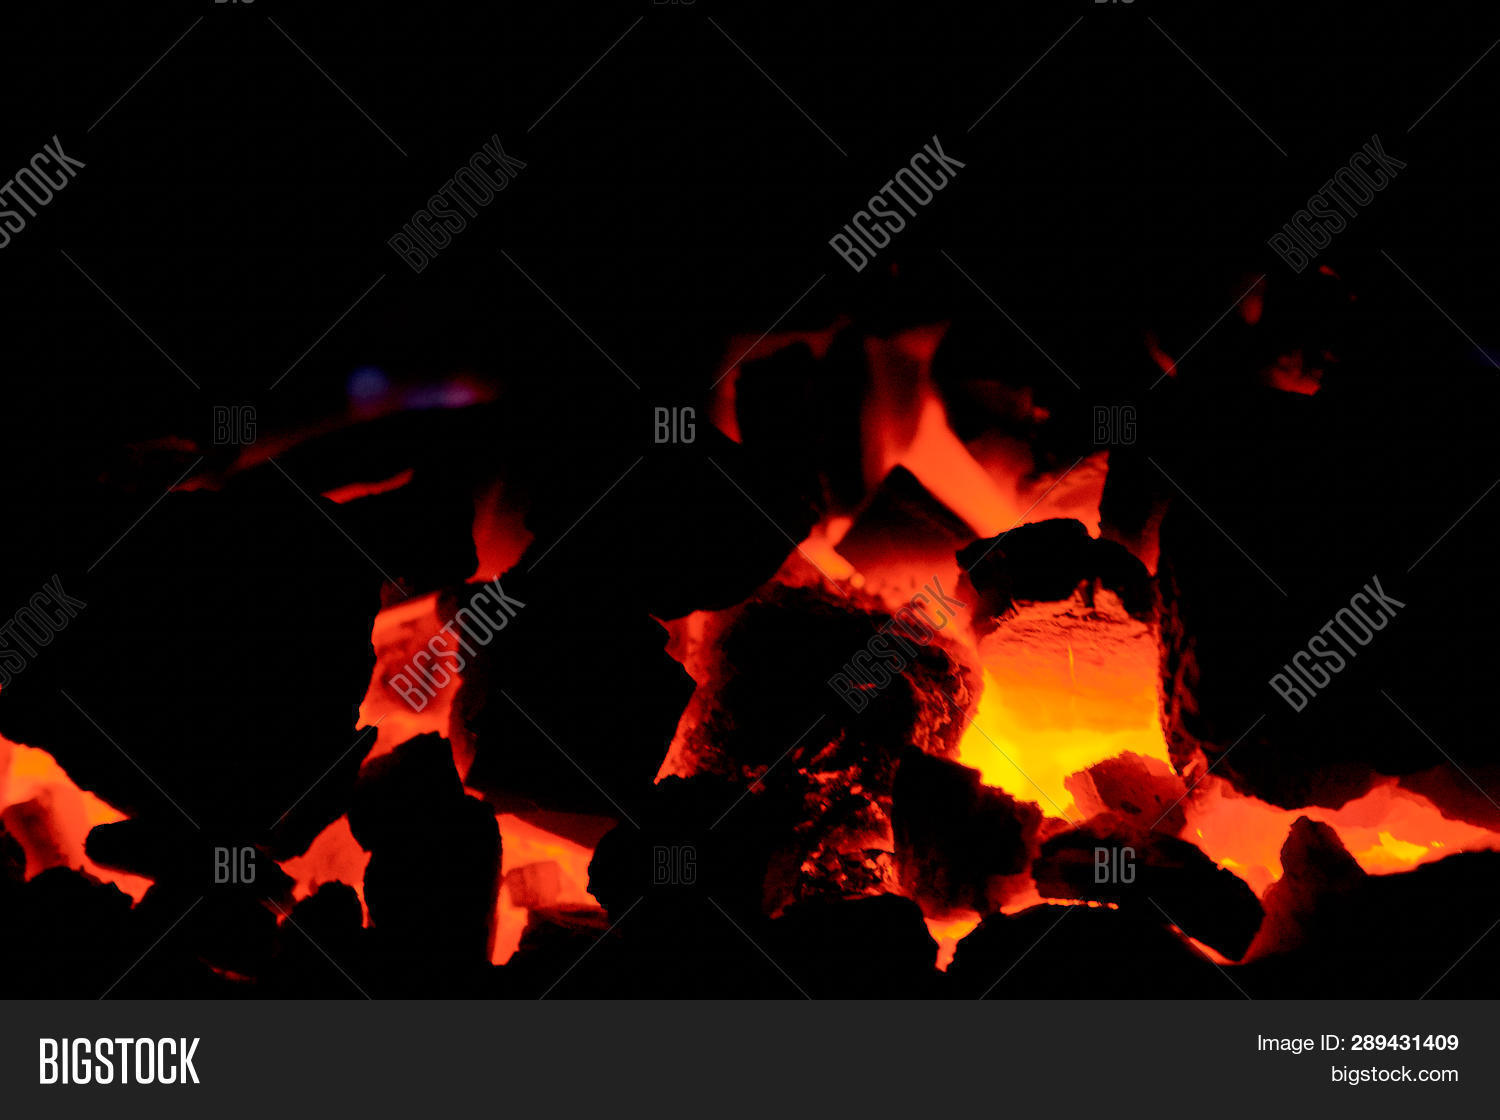 abstract,anthracite,ash,bbq,beautiful,blaze,bonfire,bright,burn,burning,burnt,campfire,carbon,charcoal,closeup,coal,color,danger,ember,energy,fiery,fire,fireplace,firewood,flame,flammable,forge,fuel,furnace,glow,glowing,grill,heat,hell,hot,light,macro,power,shiny,smoke,smolder,solid,spark,temperature,warm,wood,yellow